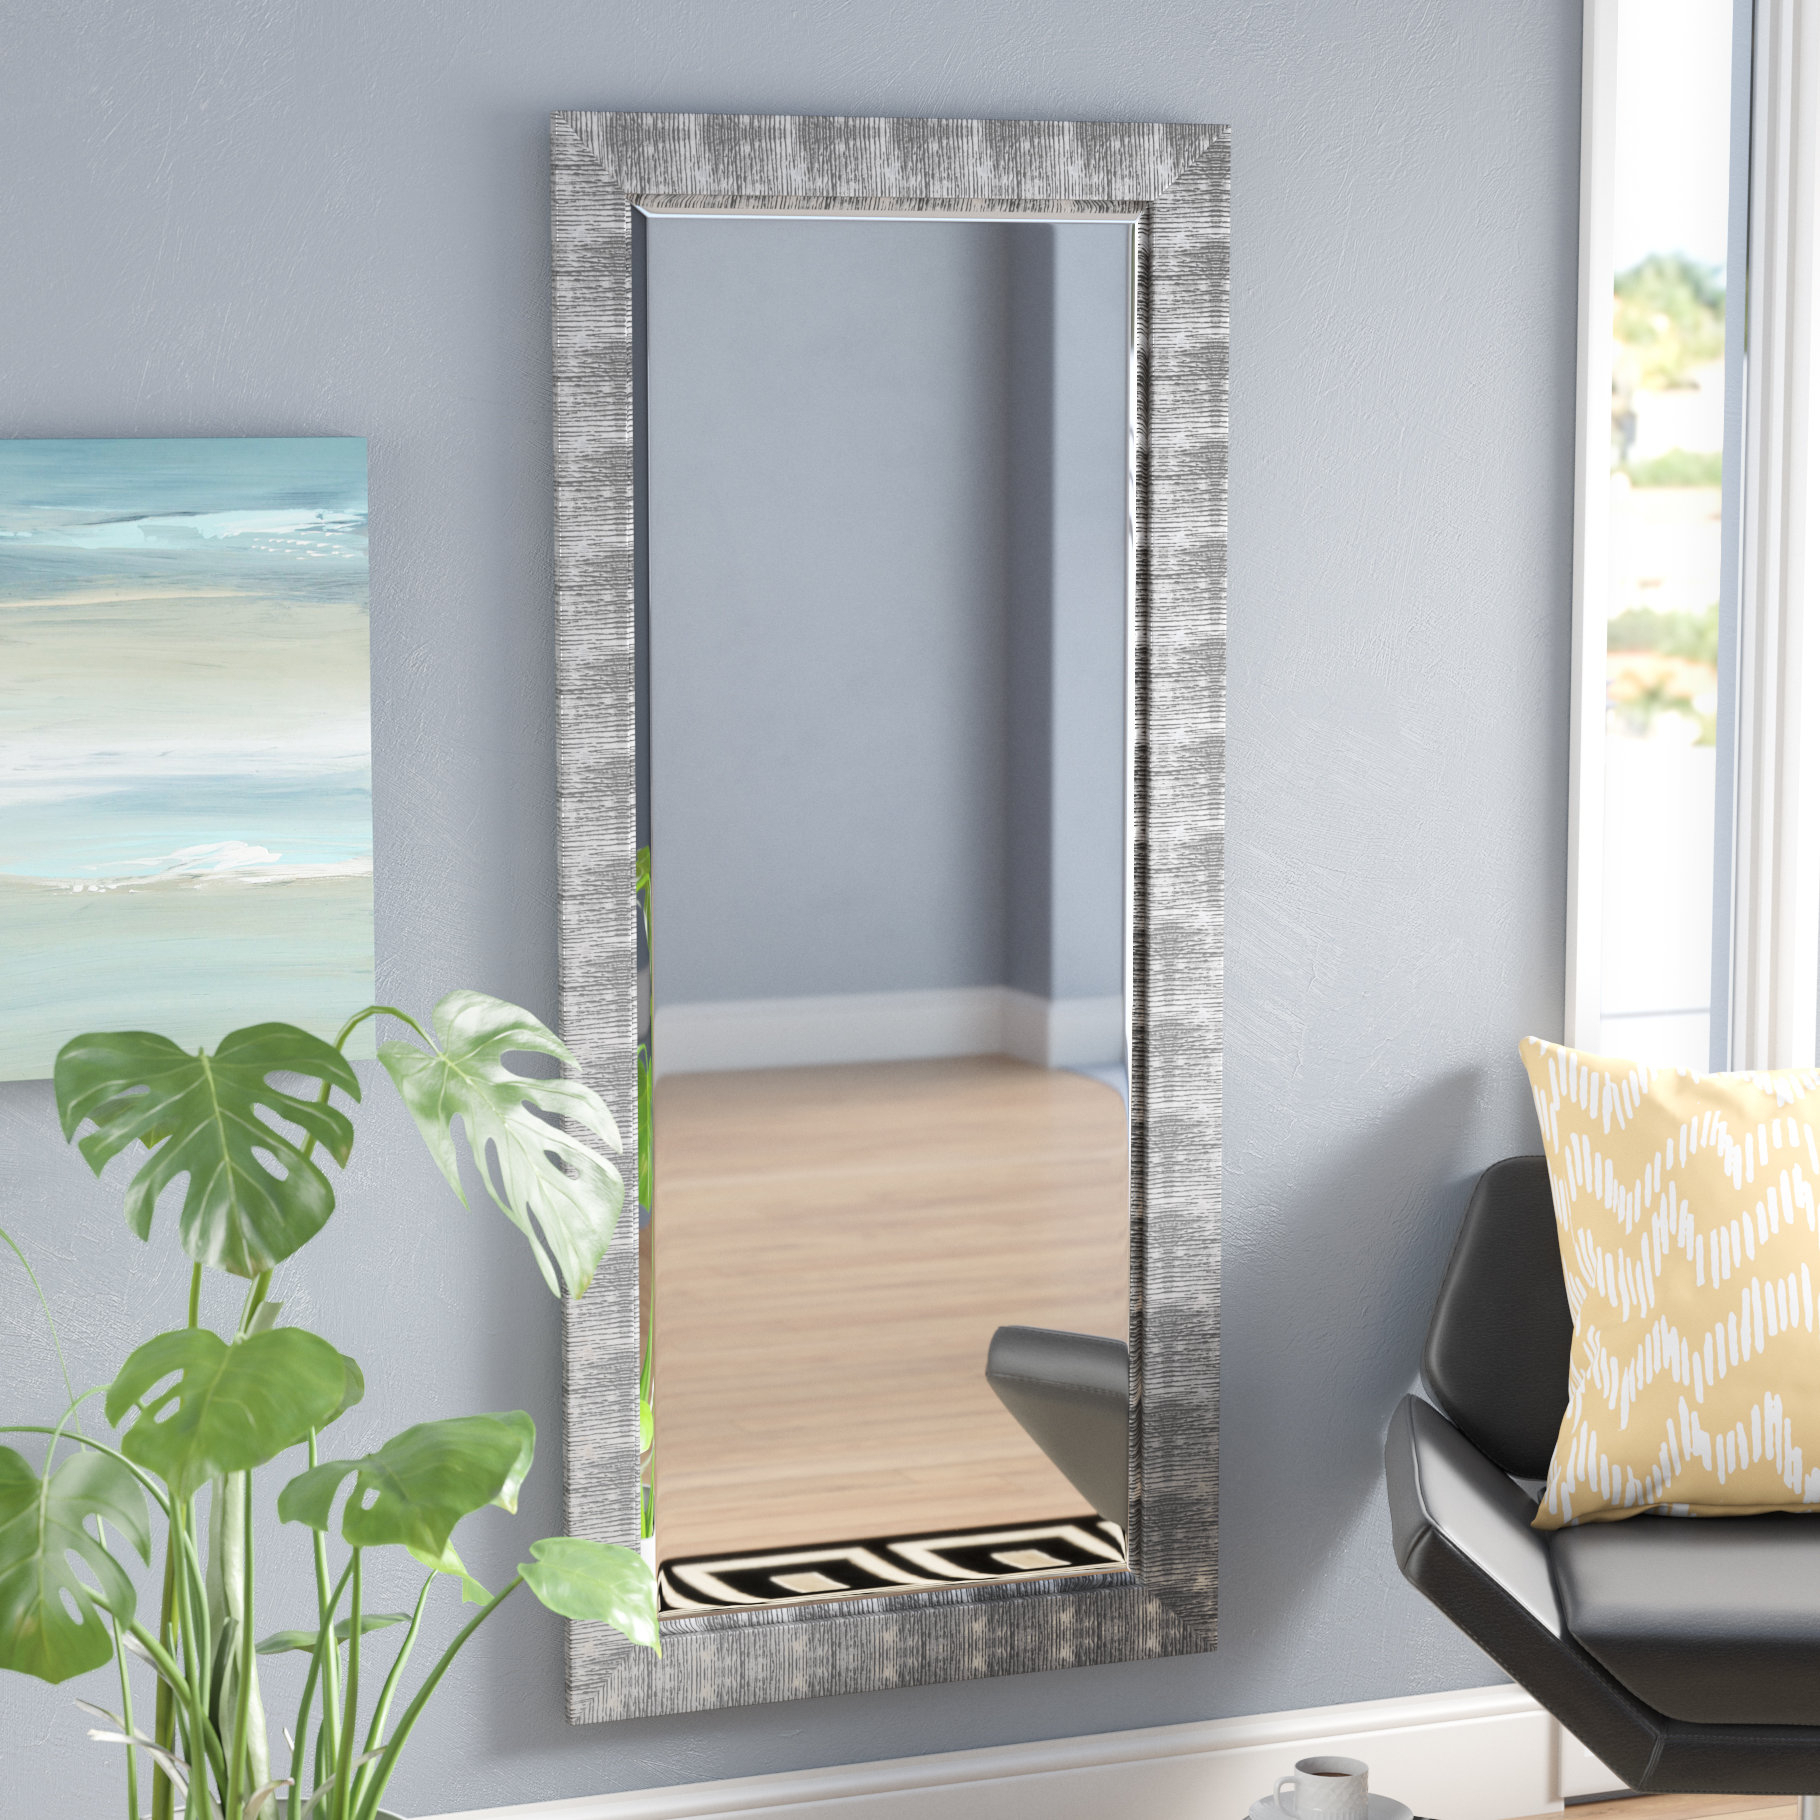 Grain Texture Modern & Contemporary Beveled Wall Mirror Within Epinal Shabby Elegance Wall Mirrors (View 15 of 30)